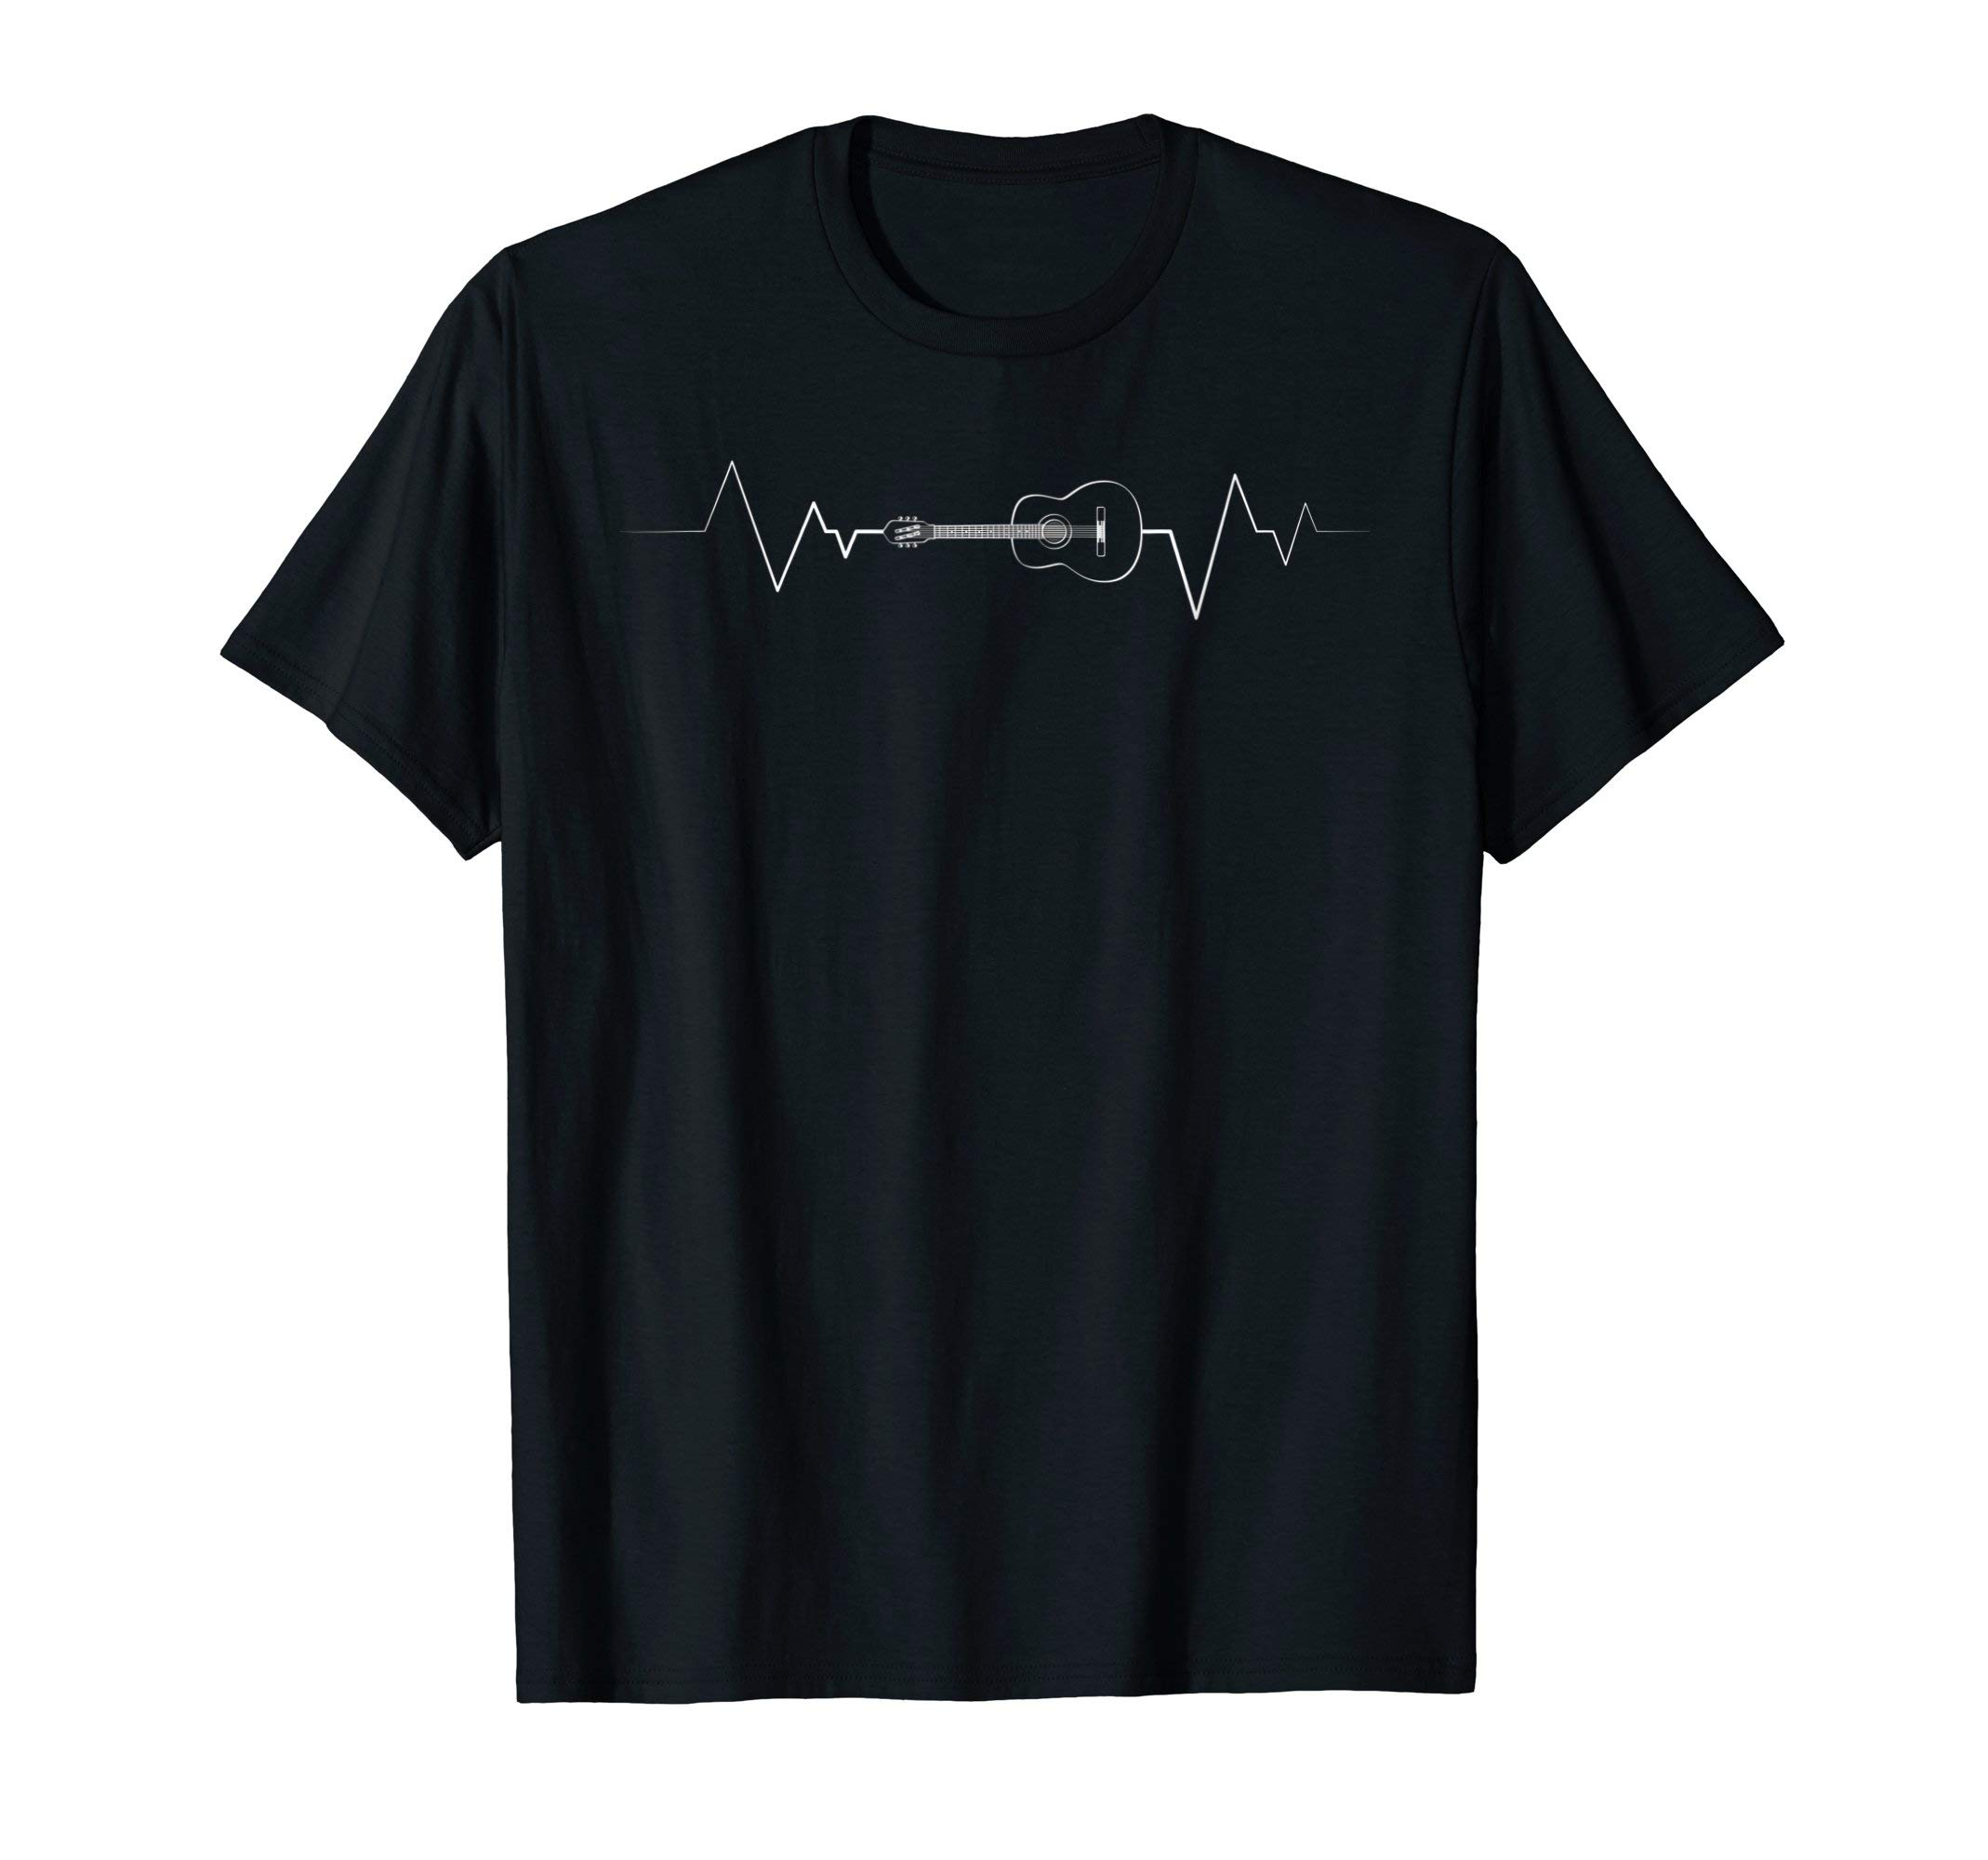 Acoustic Guitar Heartbeat Shirt - Guitar Musician T-Shirt by Music Lovers Funky Frases